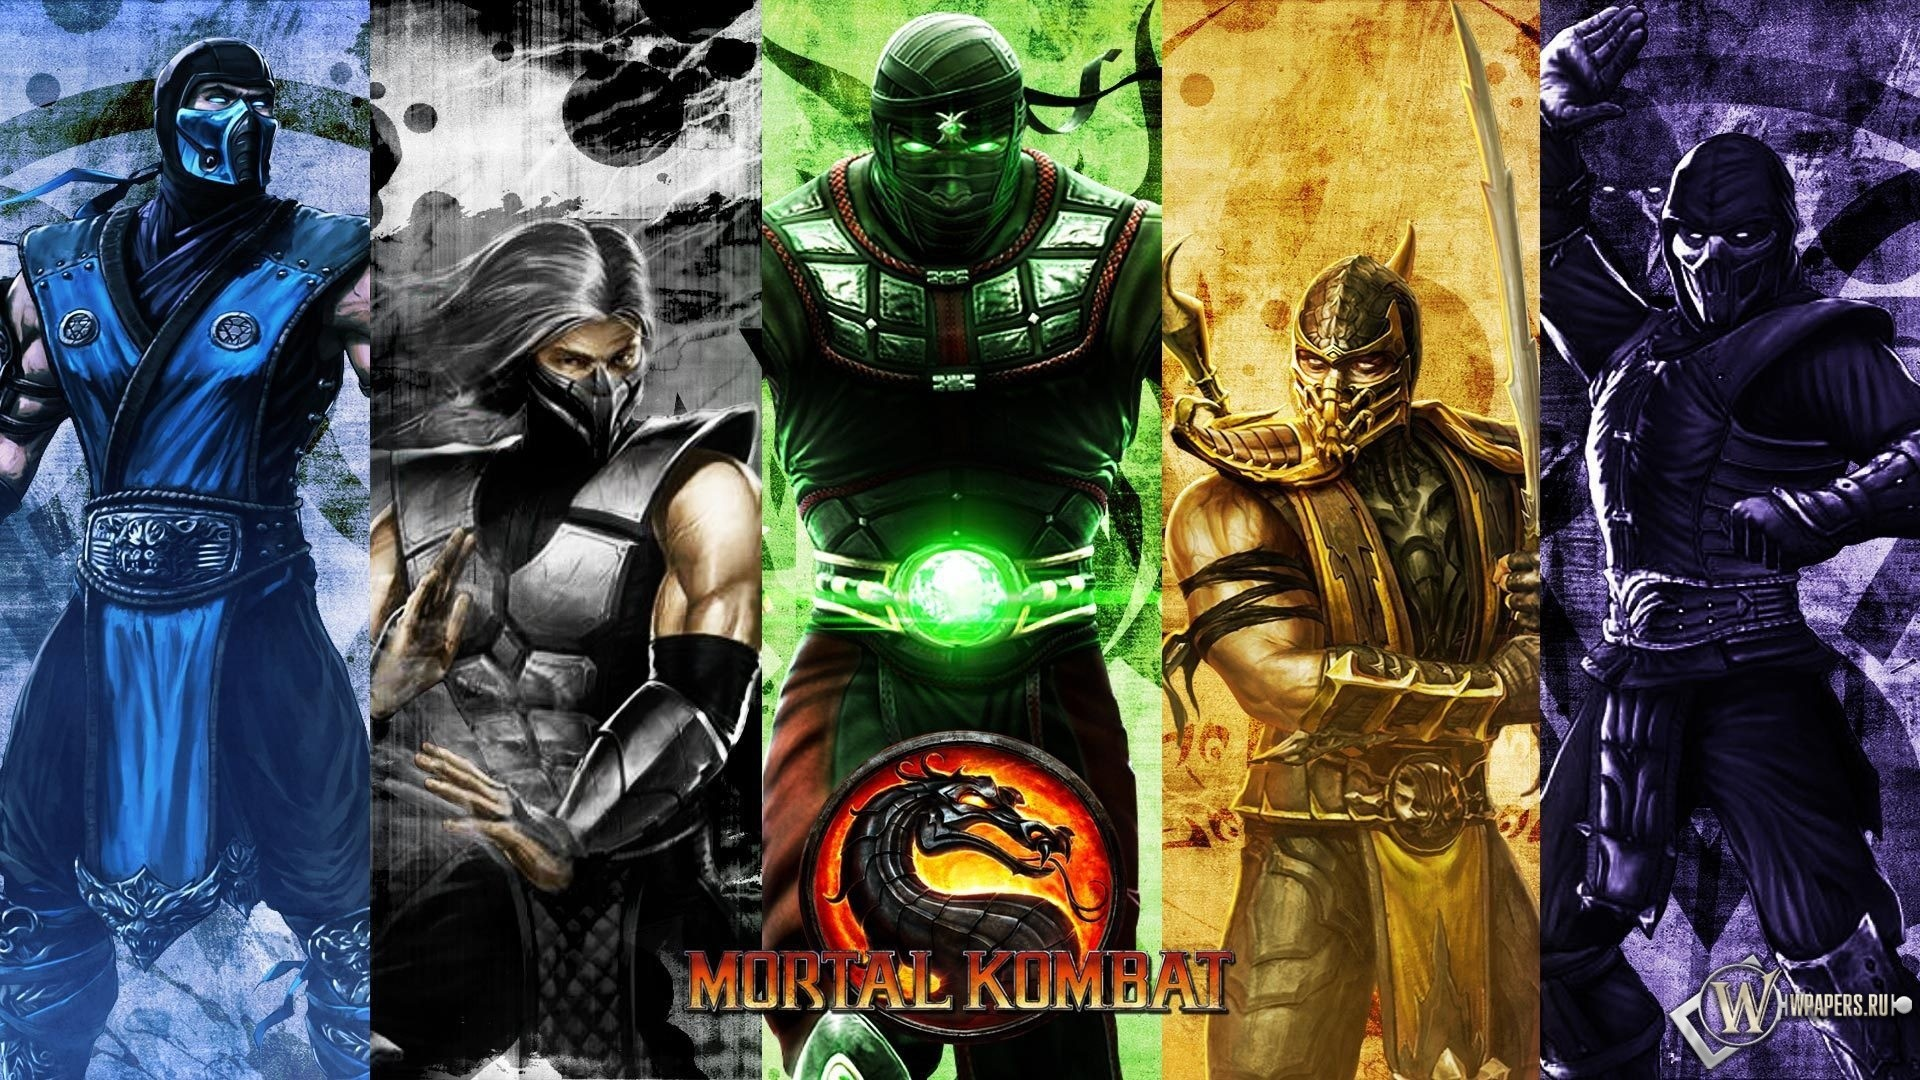 Mortal Kombat Wallpaper Hd 1080p 1280x720 Download Hd